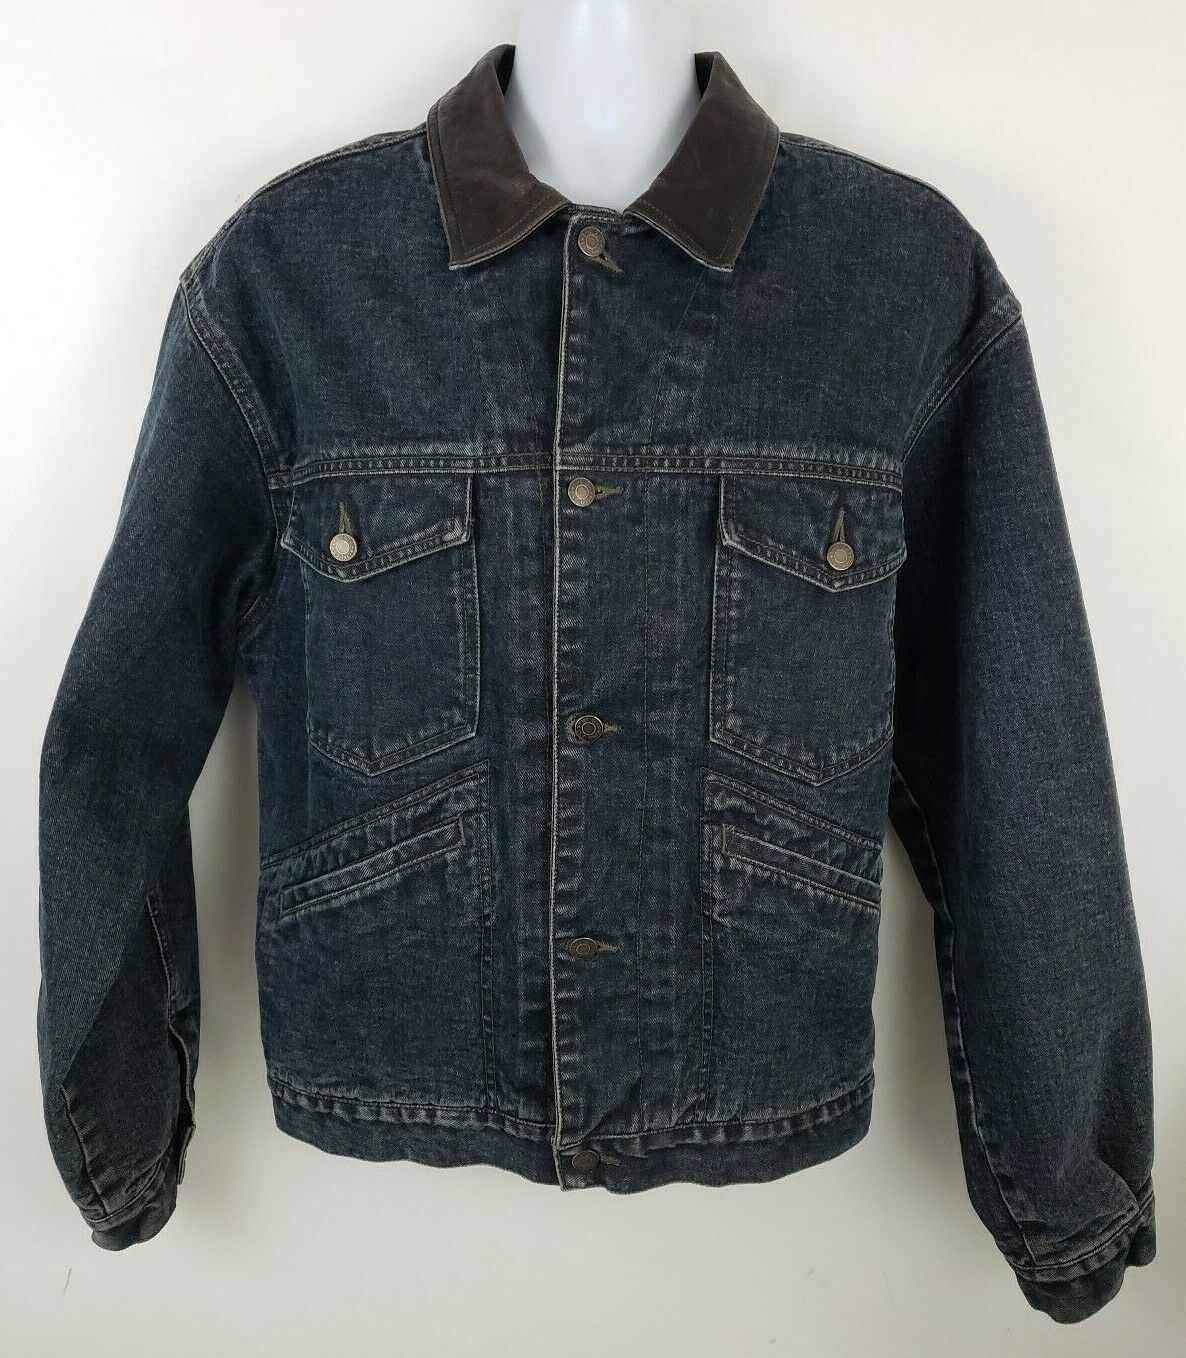 Primary image for Gap Premium Flannel Wool Lined Leather Trim Blue Denim Jean Trucker Jacket Sz M